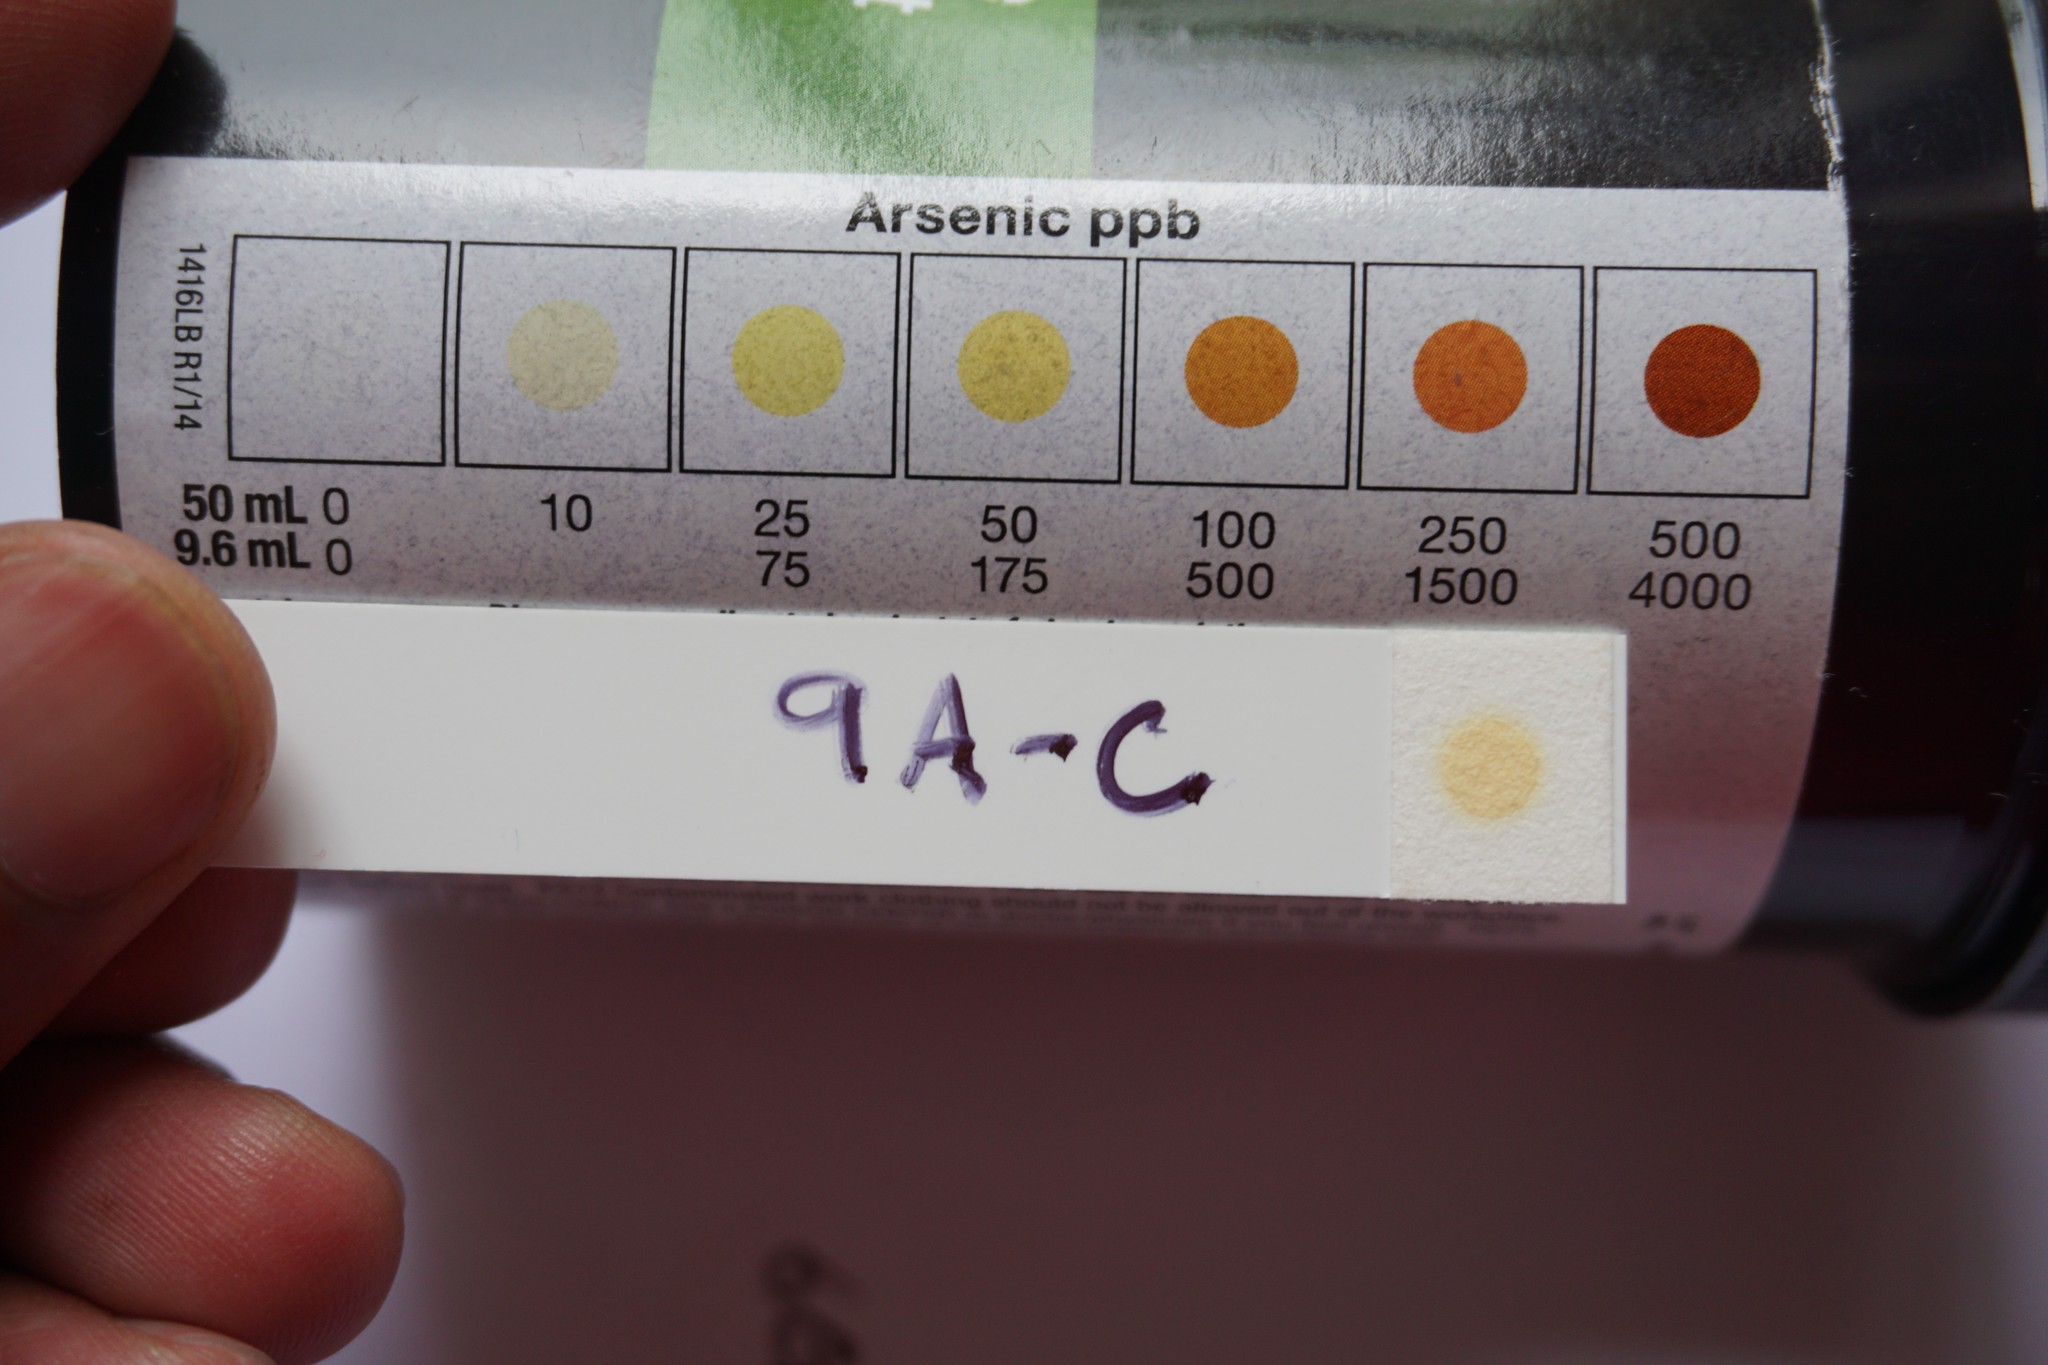 After a series of steps with different chemical reagents, the color that develops on a test strip is compared to a reference chart provided by the kit manufacturer. A darker color indicates a higher concentration of arsenic in the water sample. Image credit: R. Reddy